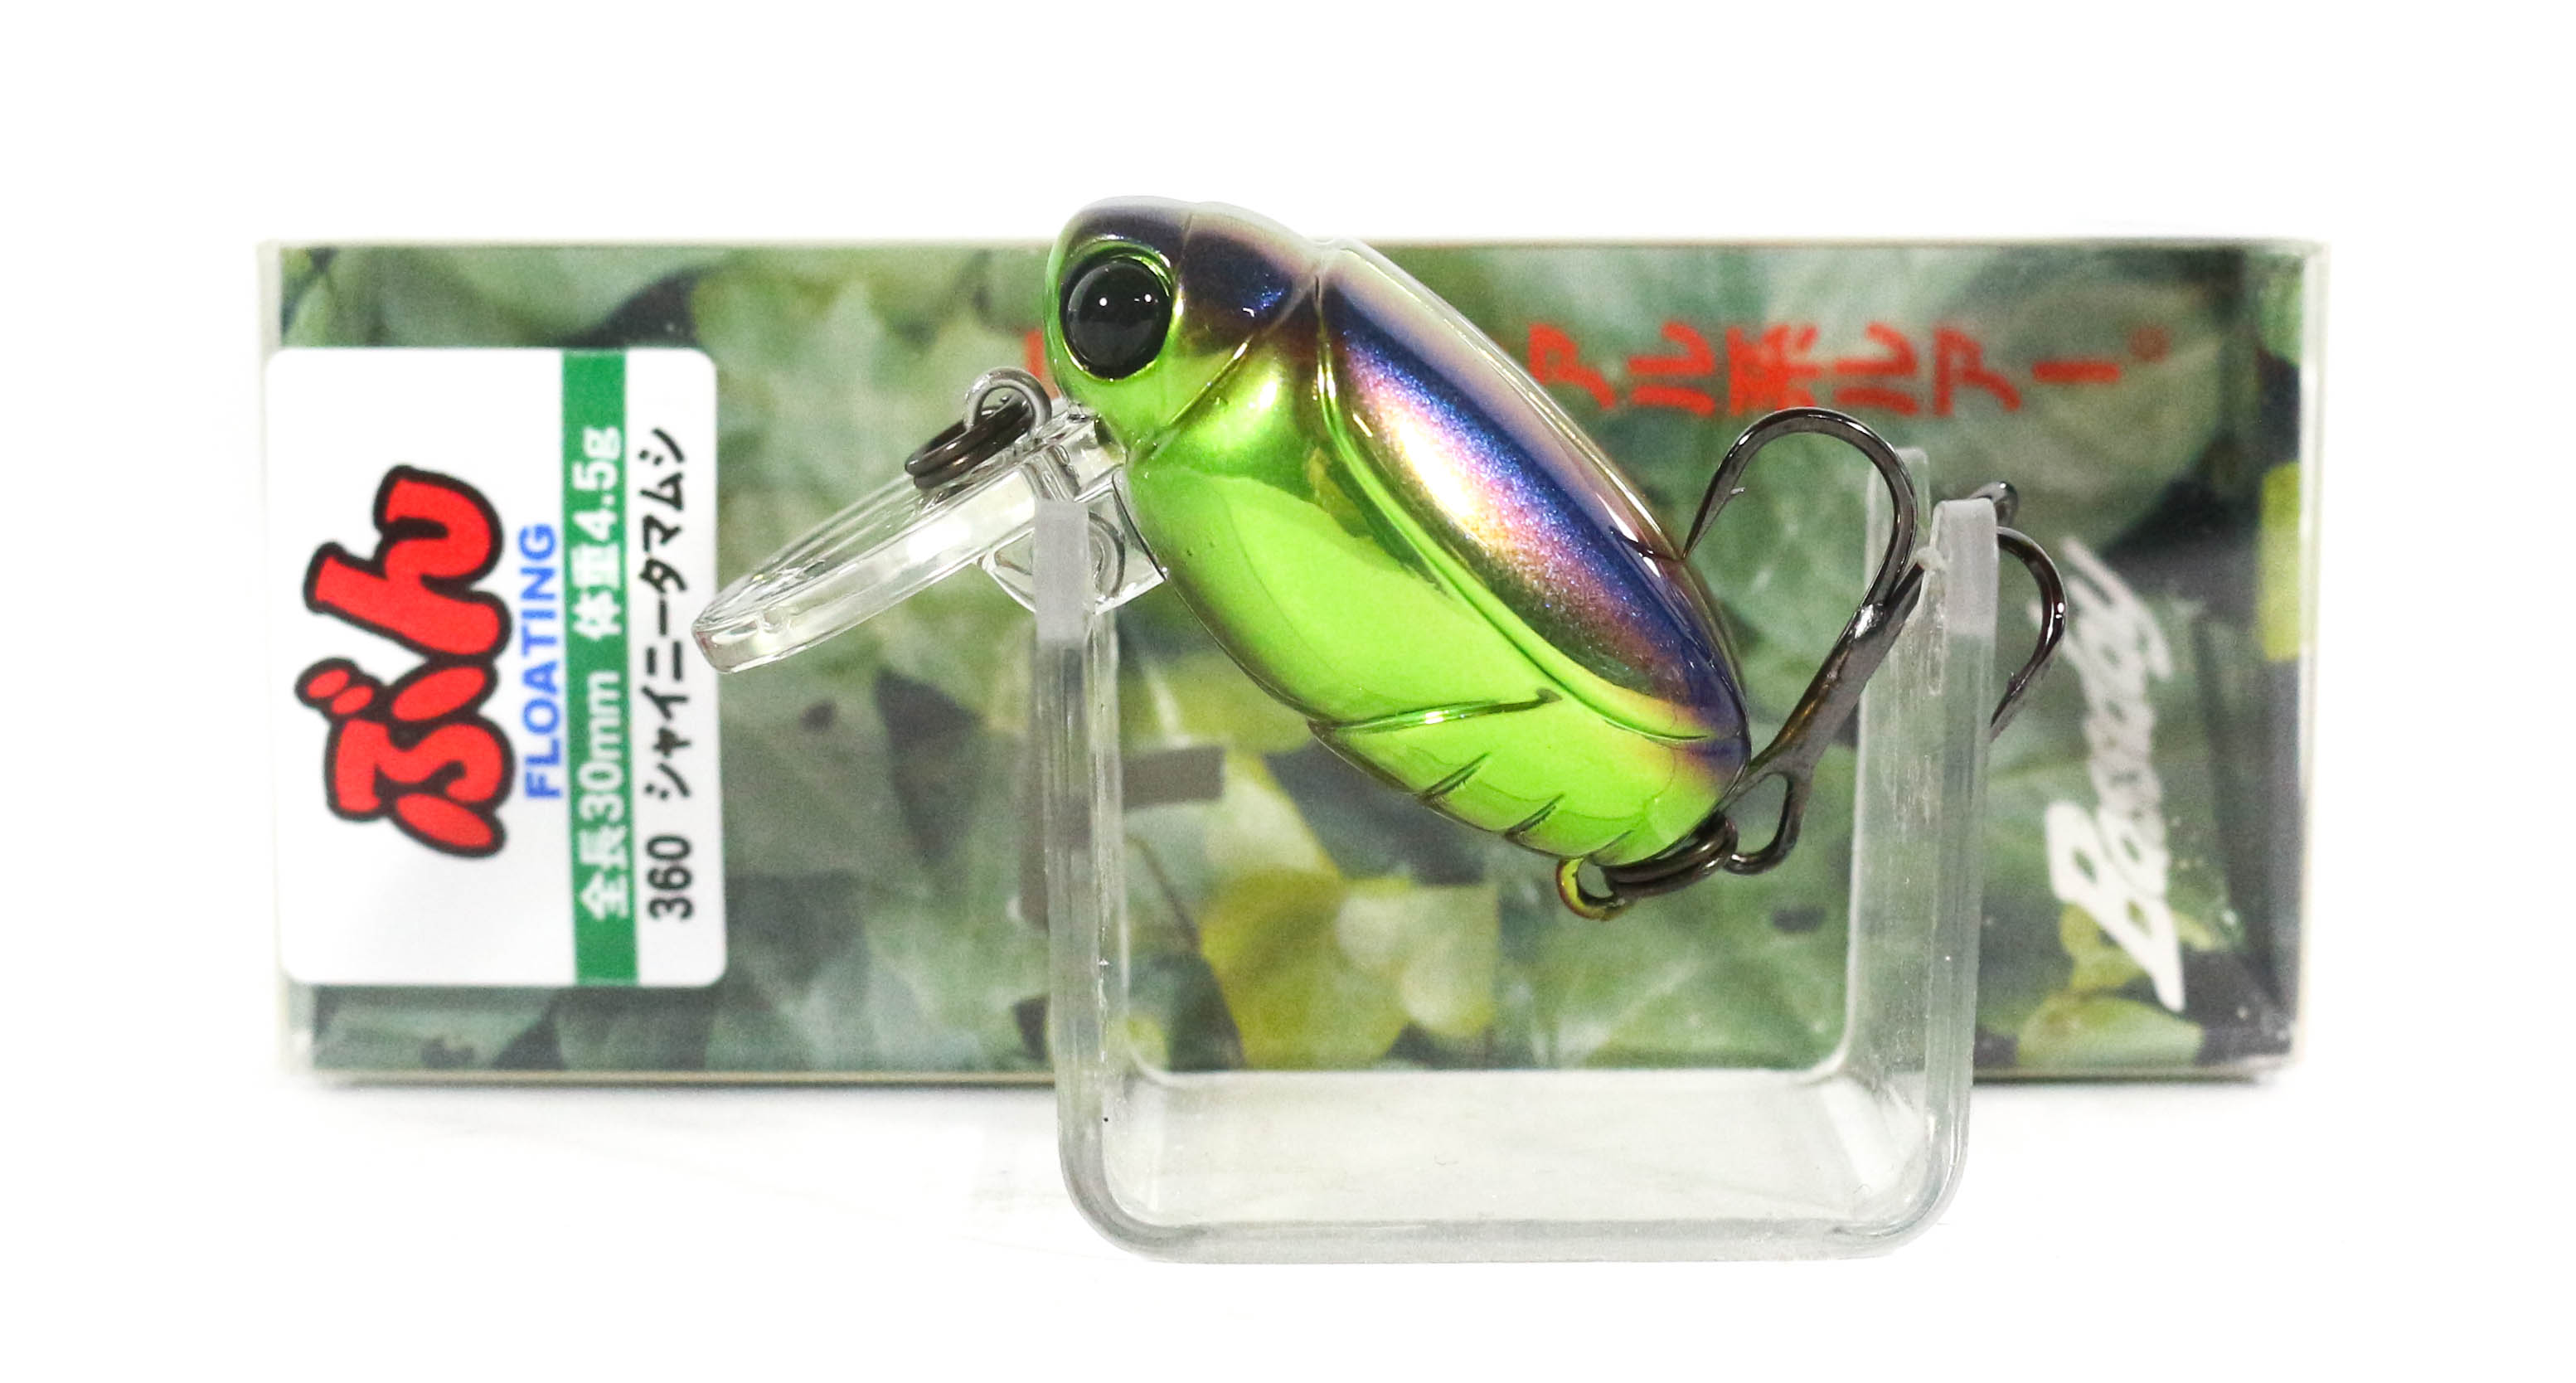 Bassday Beetle Bun 30F Floating Lure 4.5 grams 360 (3433)